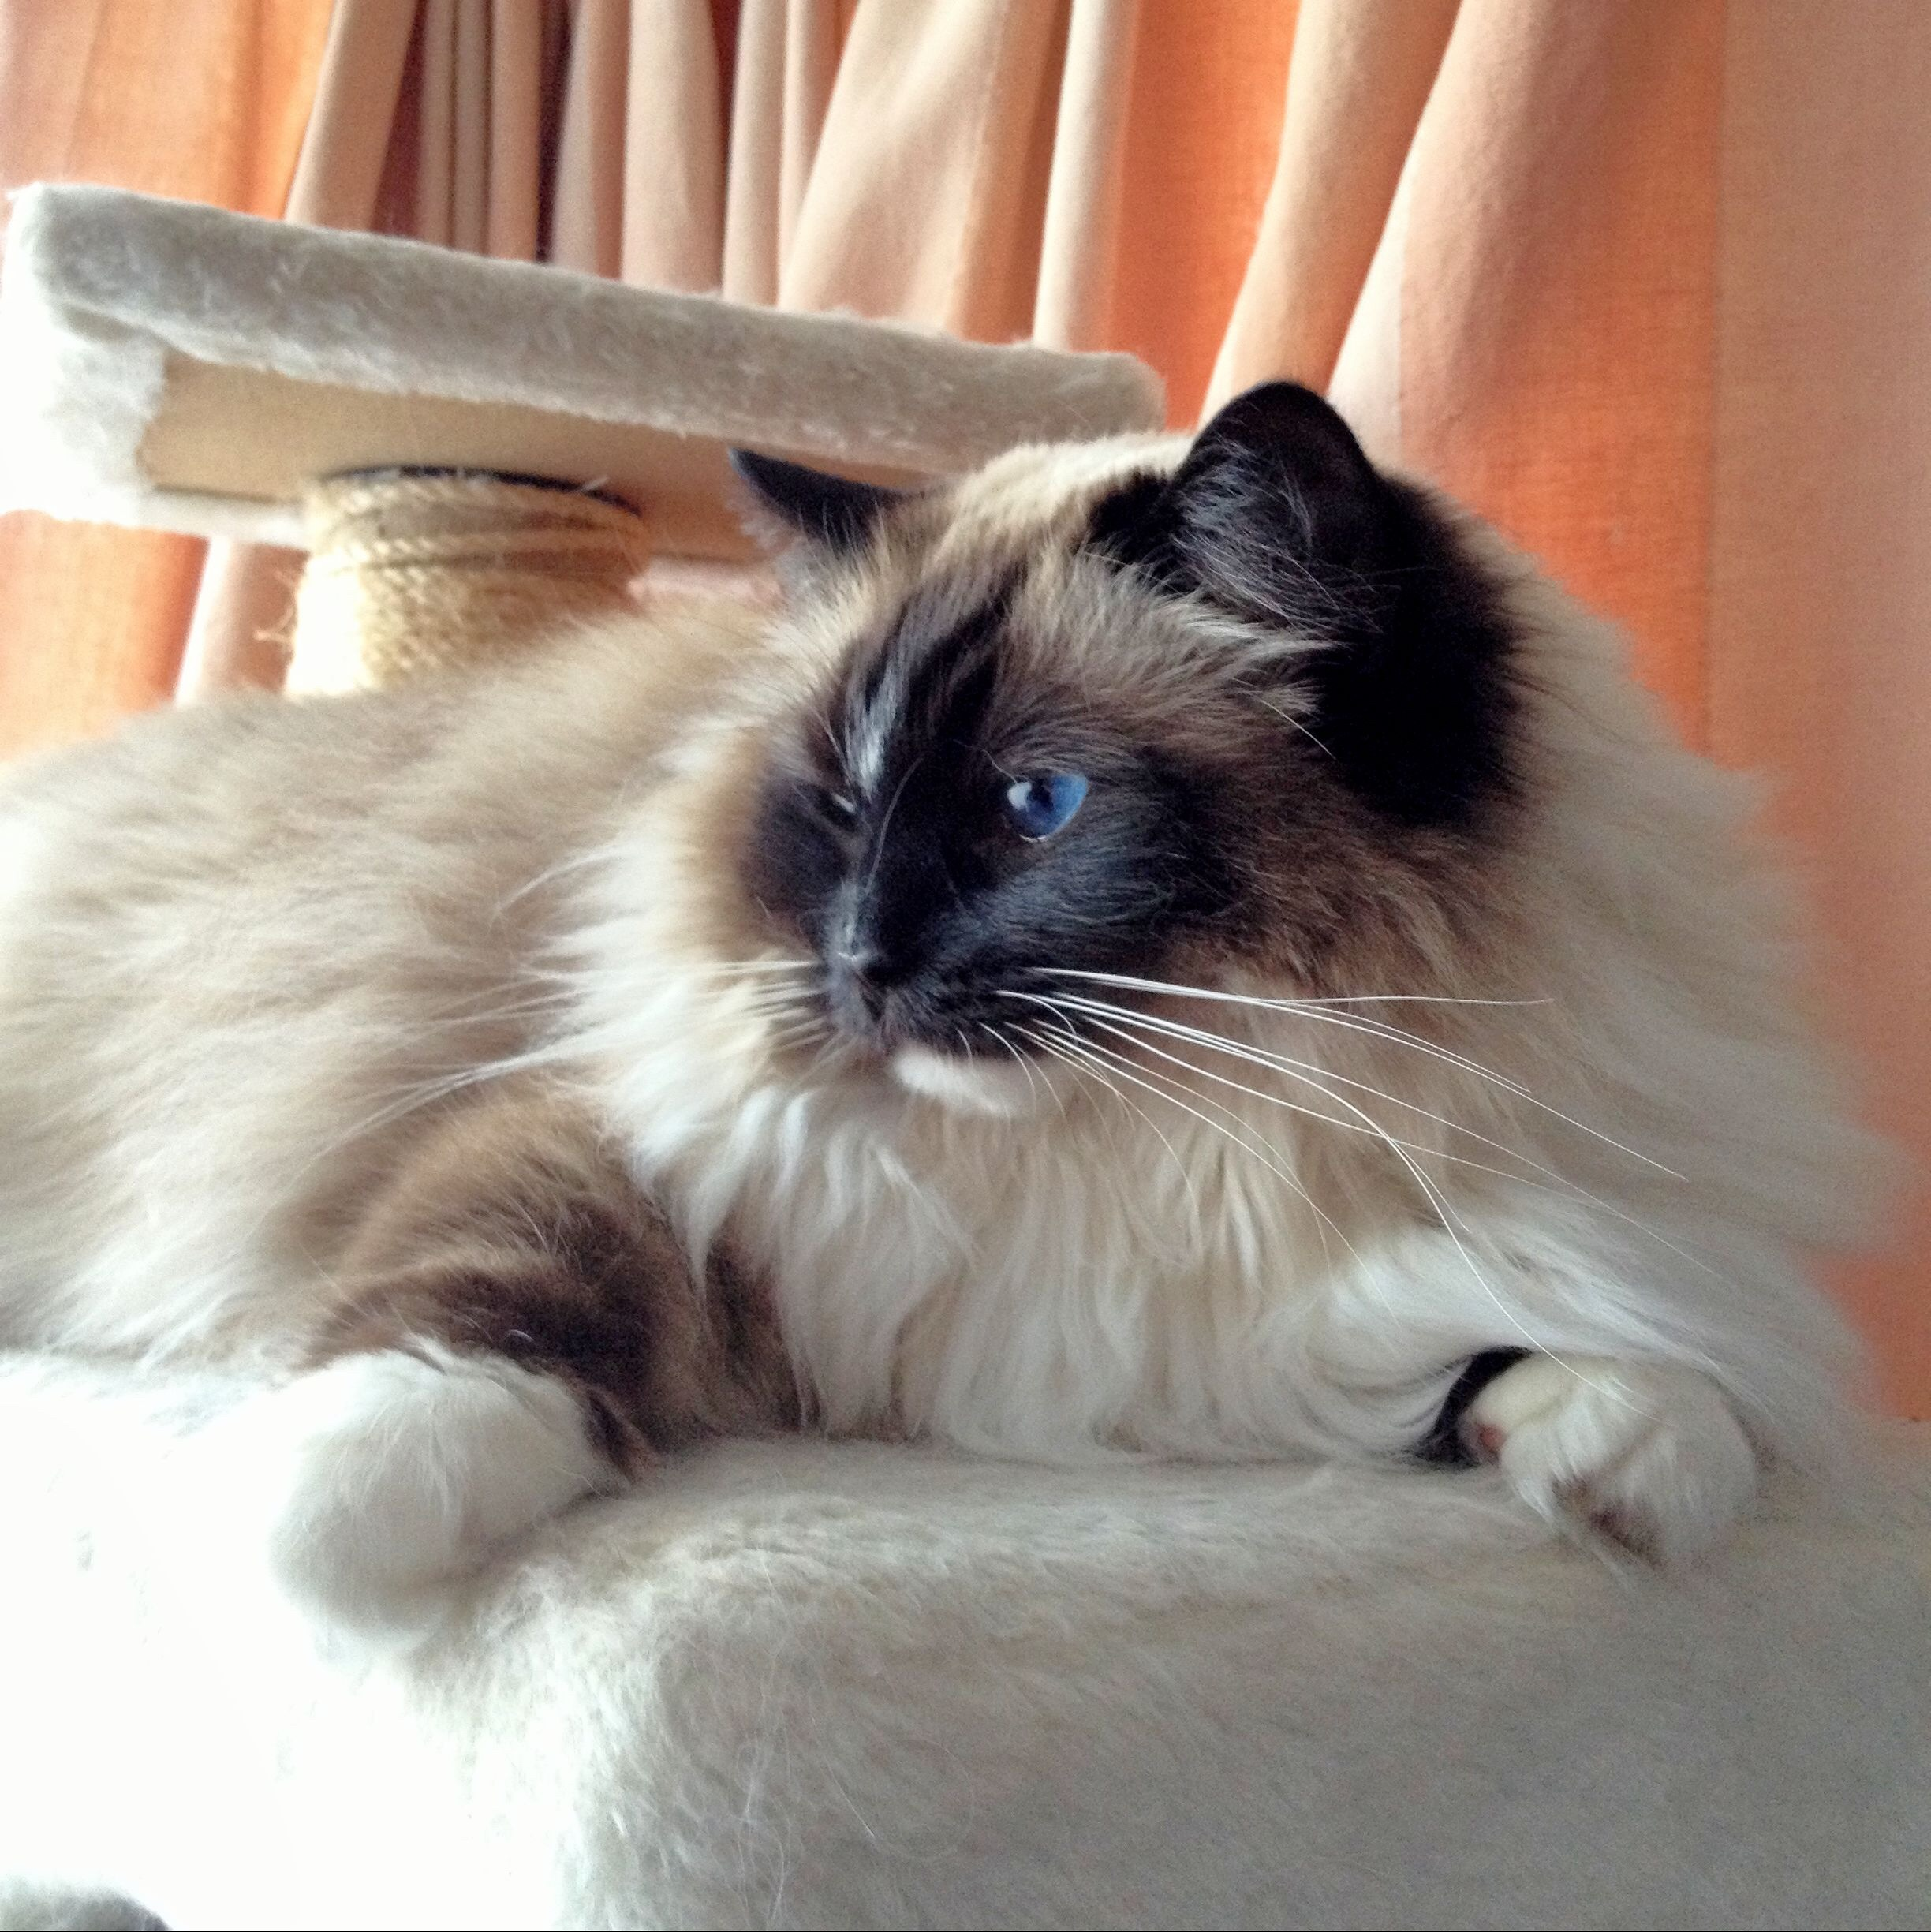 Photo of Munchkin the indoor cat, courtesy of John Dalton.    Photo at the top of the article is of Mossy the indoor cat, courtesy of Tania Fordwalker